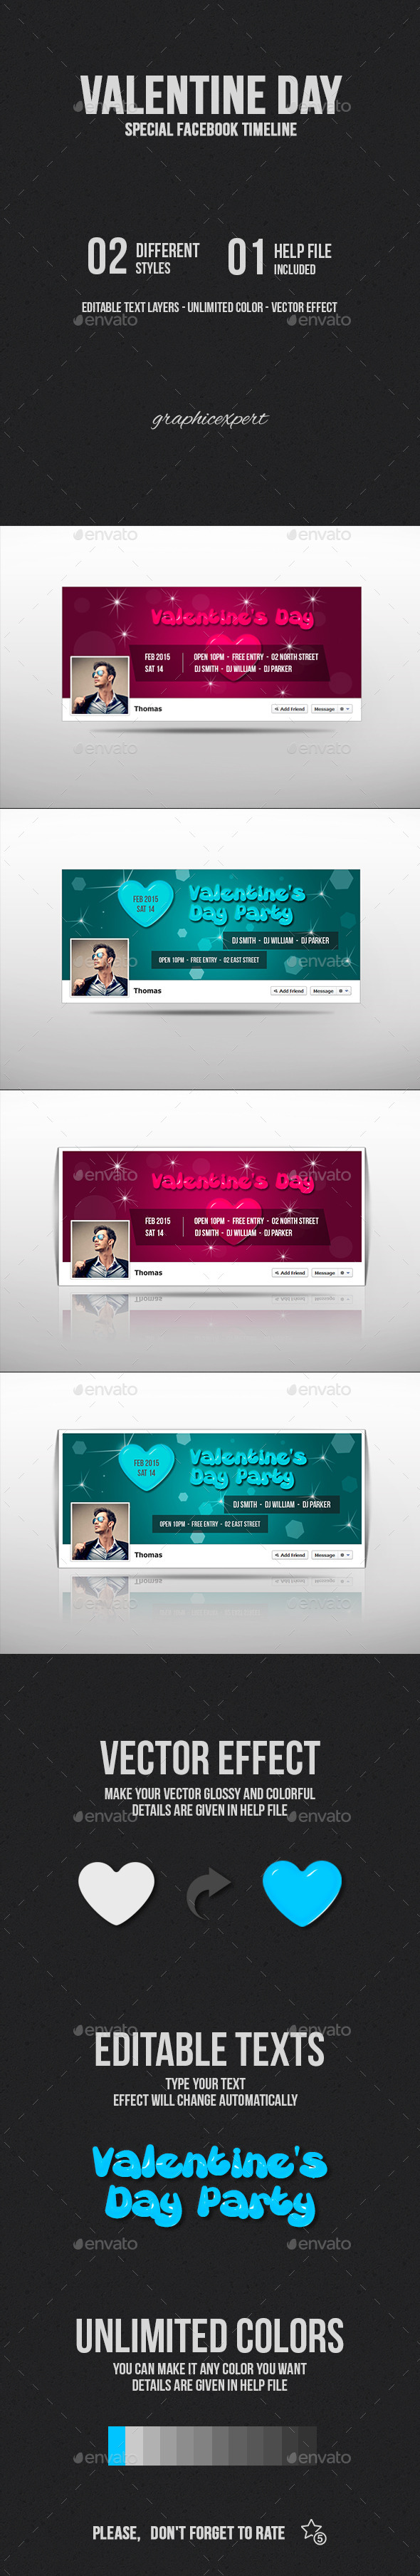 GraphicRiver Valentine Day Facebook Cover 10020013